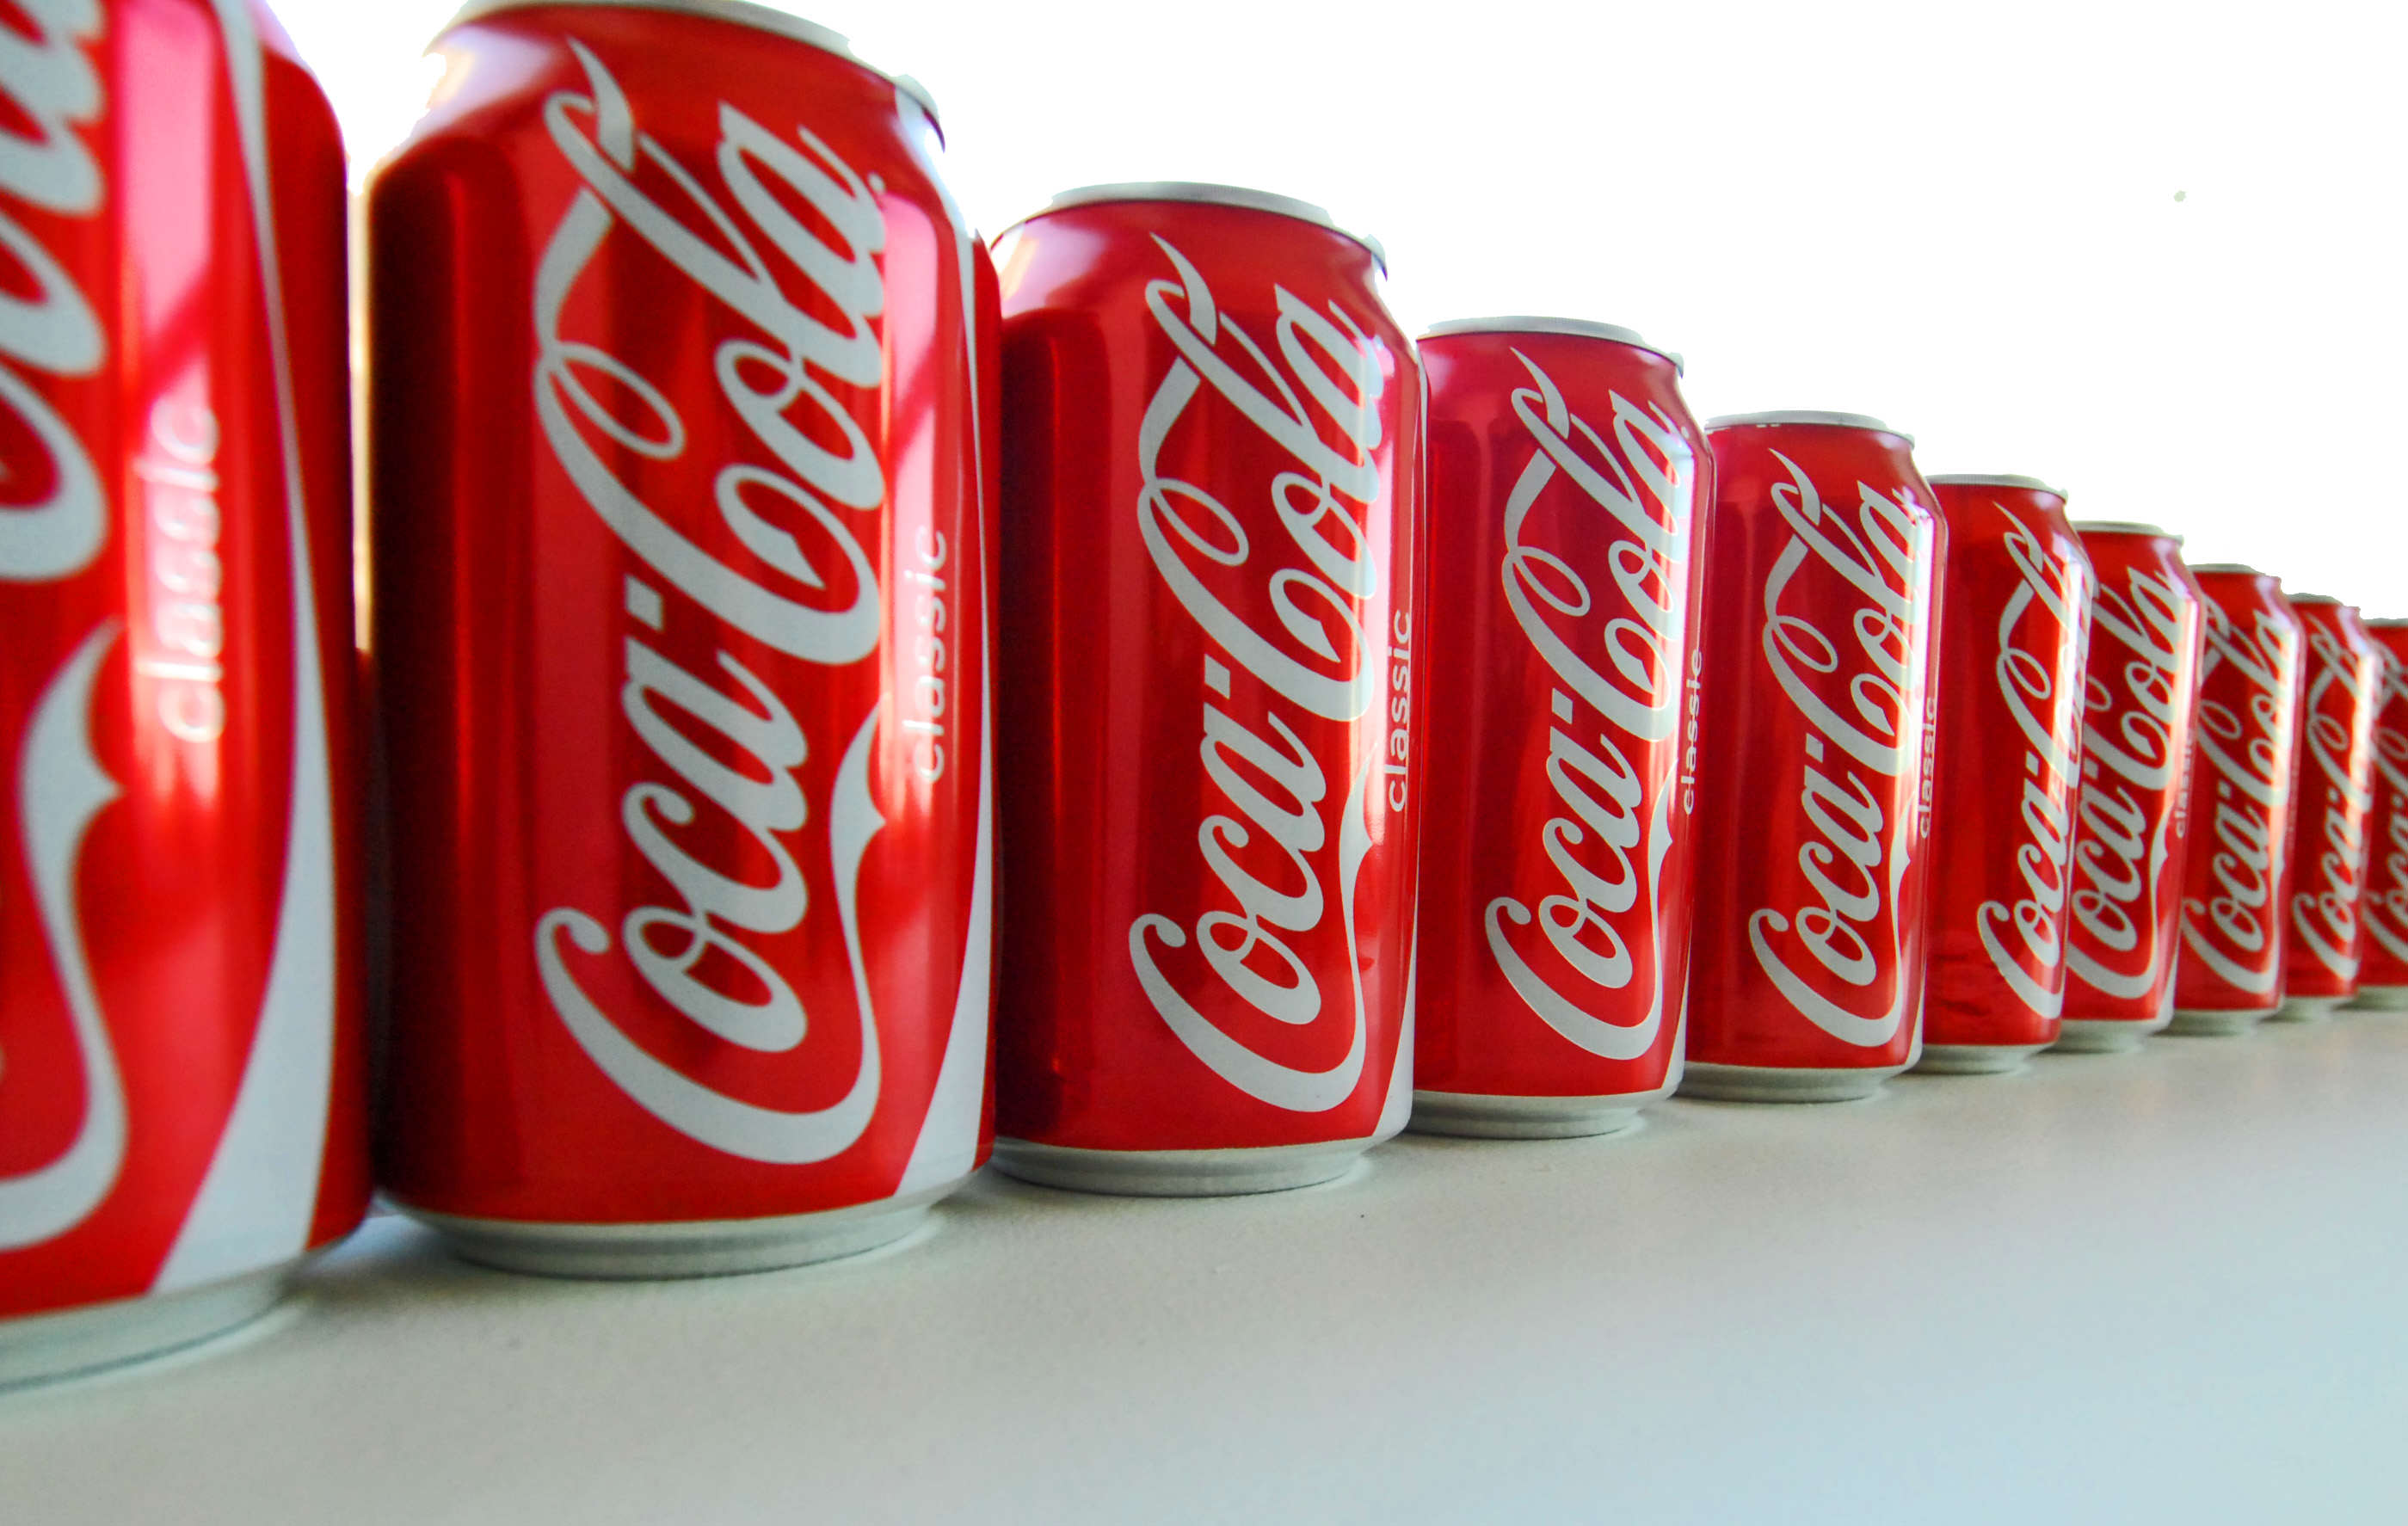 Soft Drink Giants Are Preparing To Sue The Government Over Sugar Tax coke 1